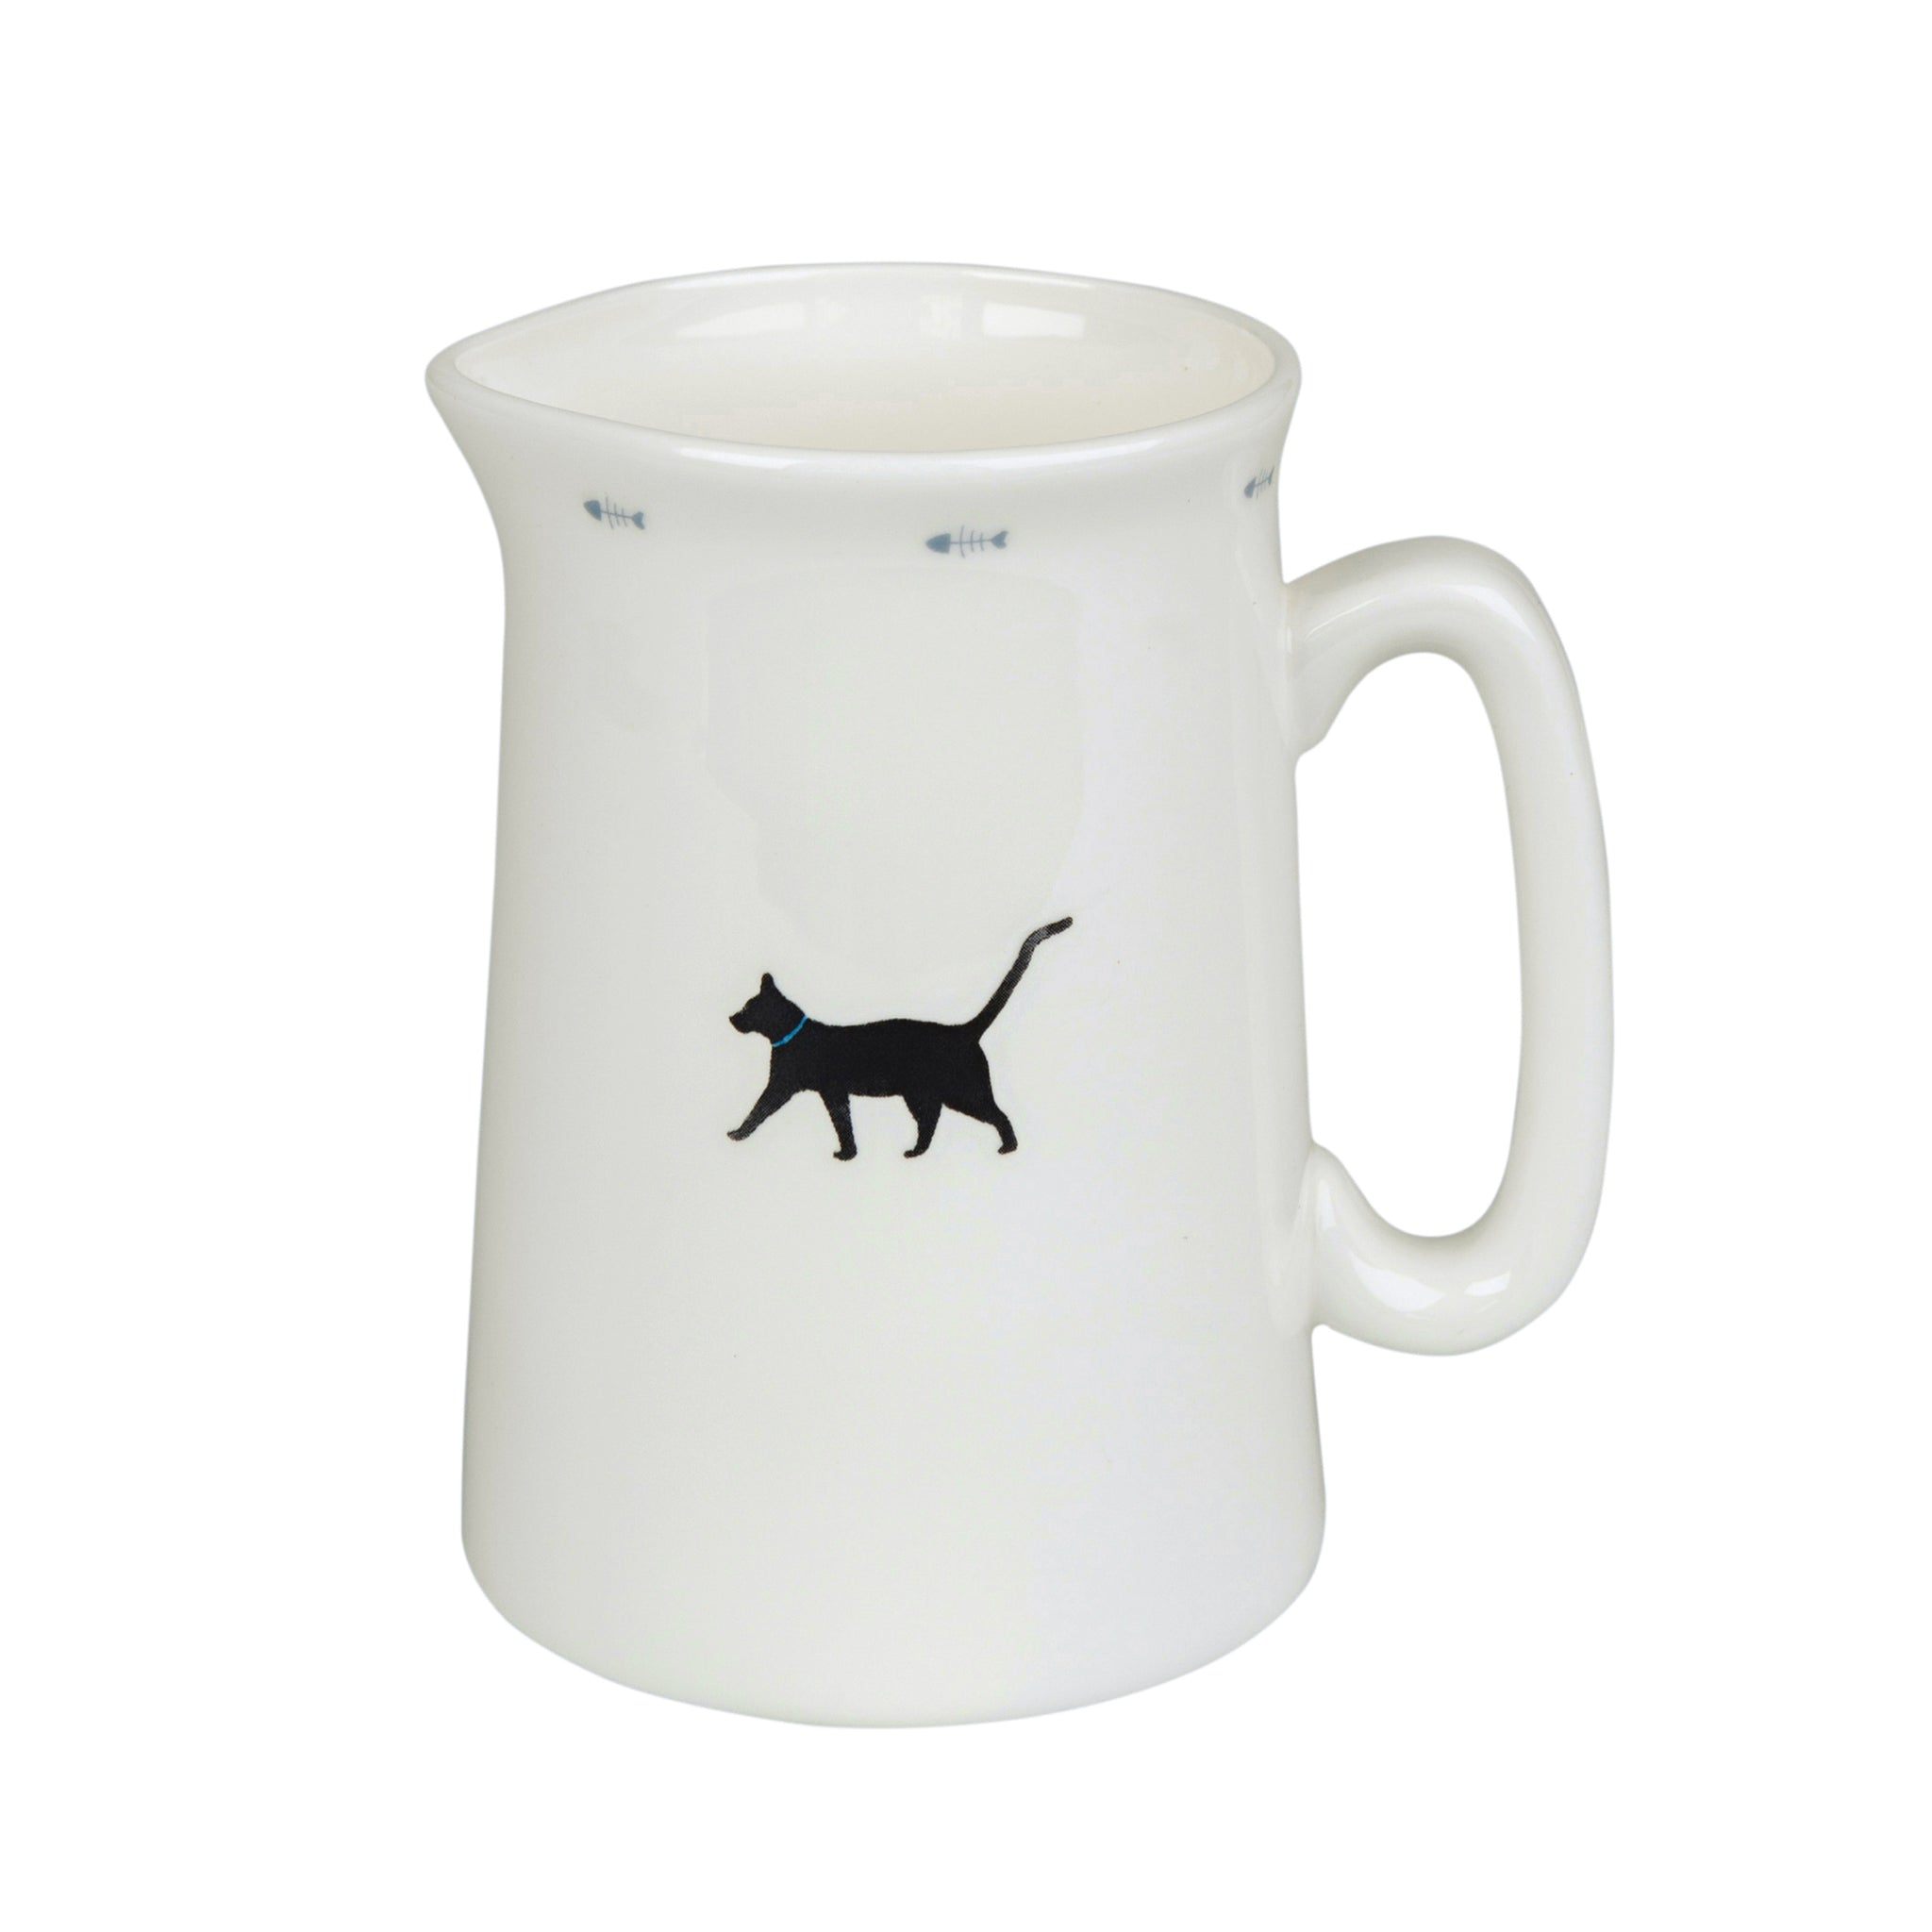 Cat Jug - Small (300ml)